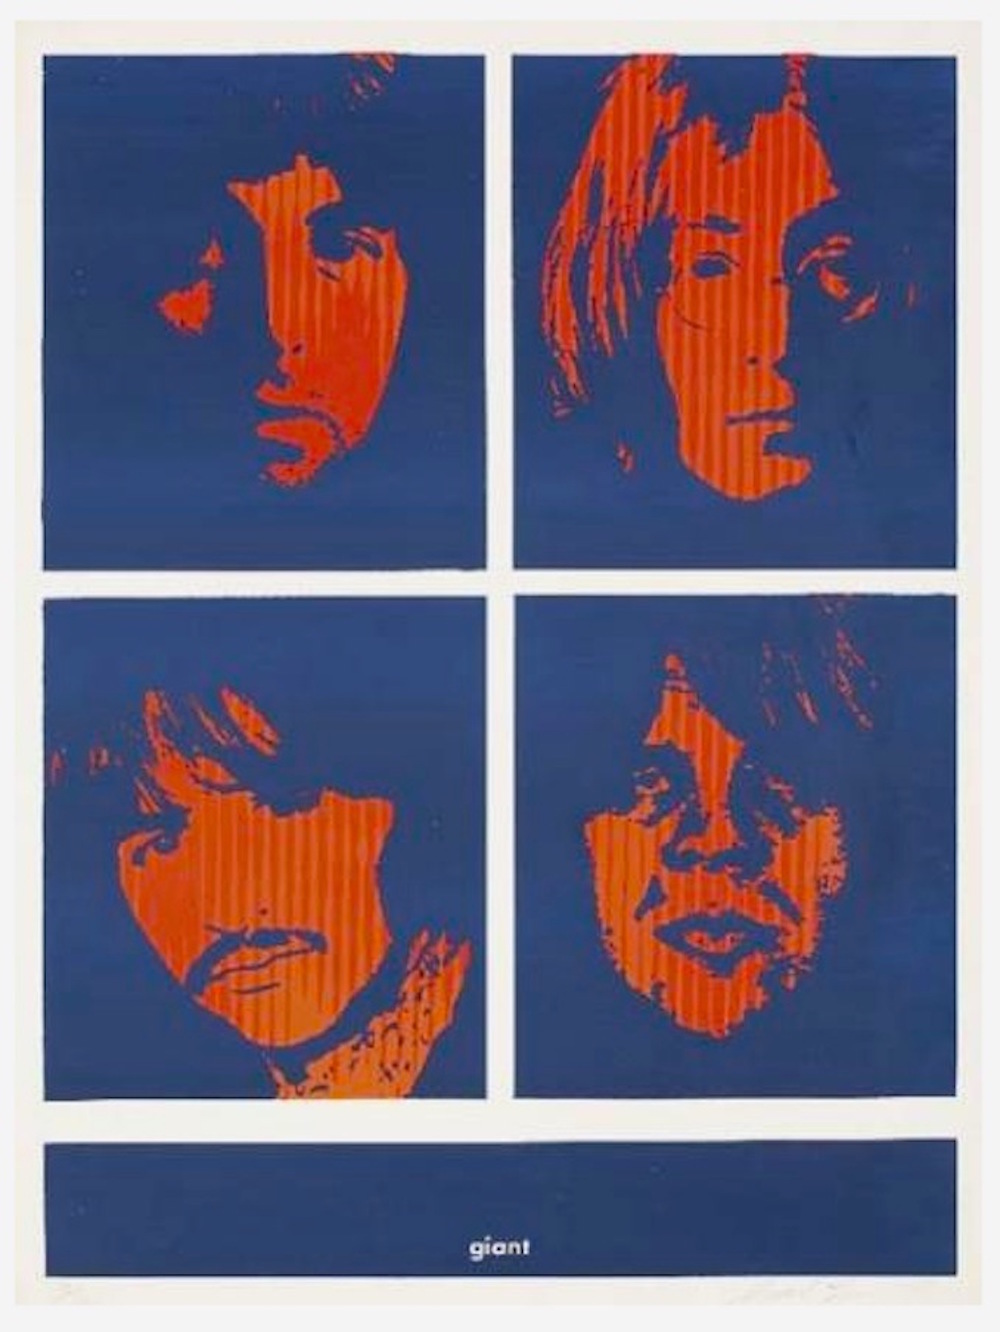 Four Giant Beatles by Shepard Fairey